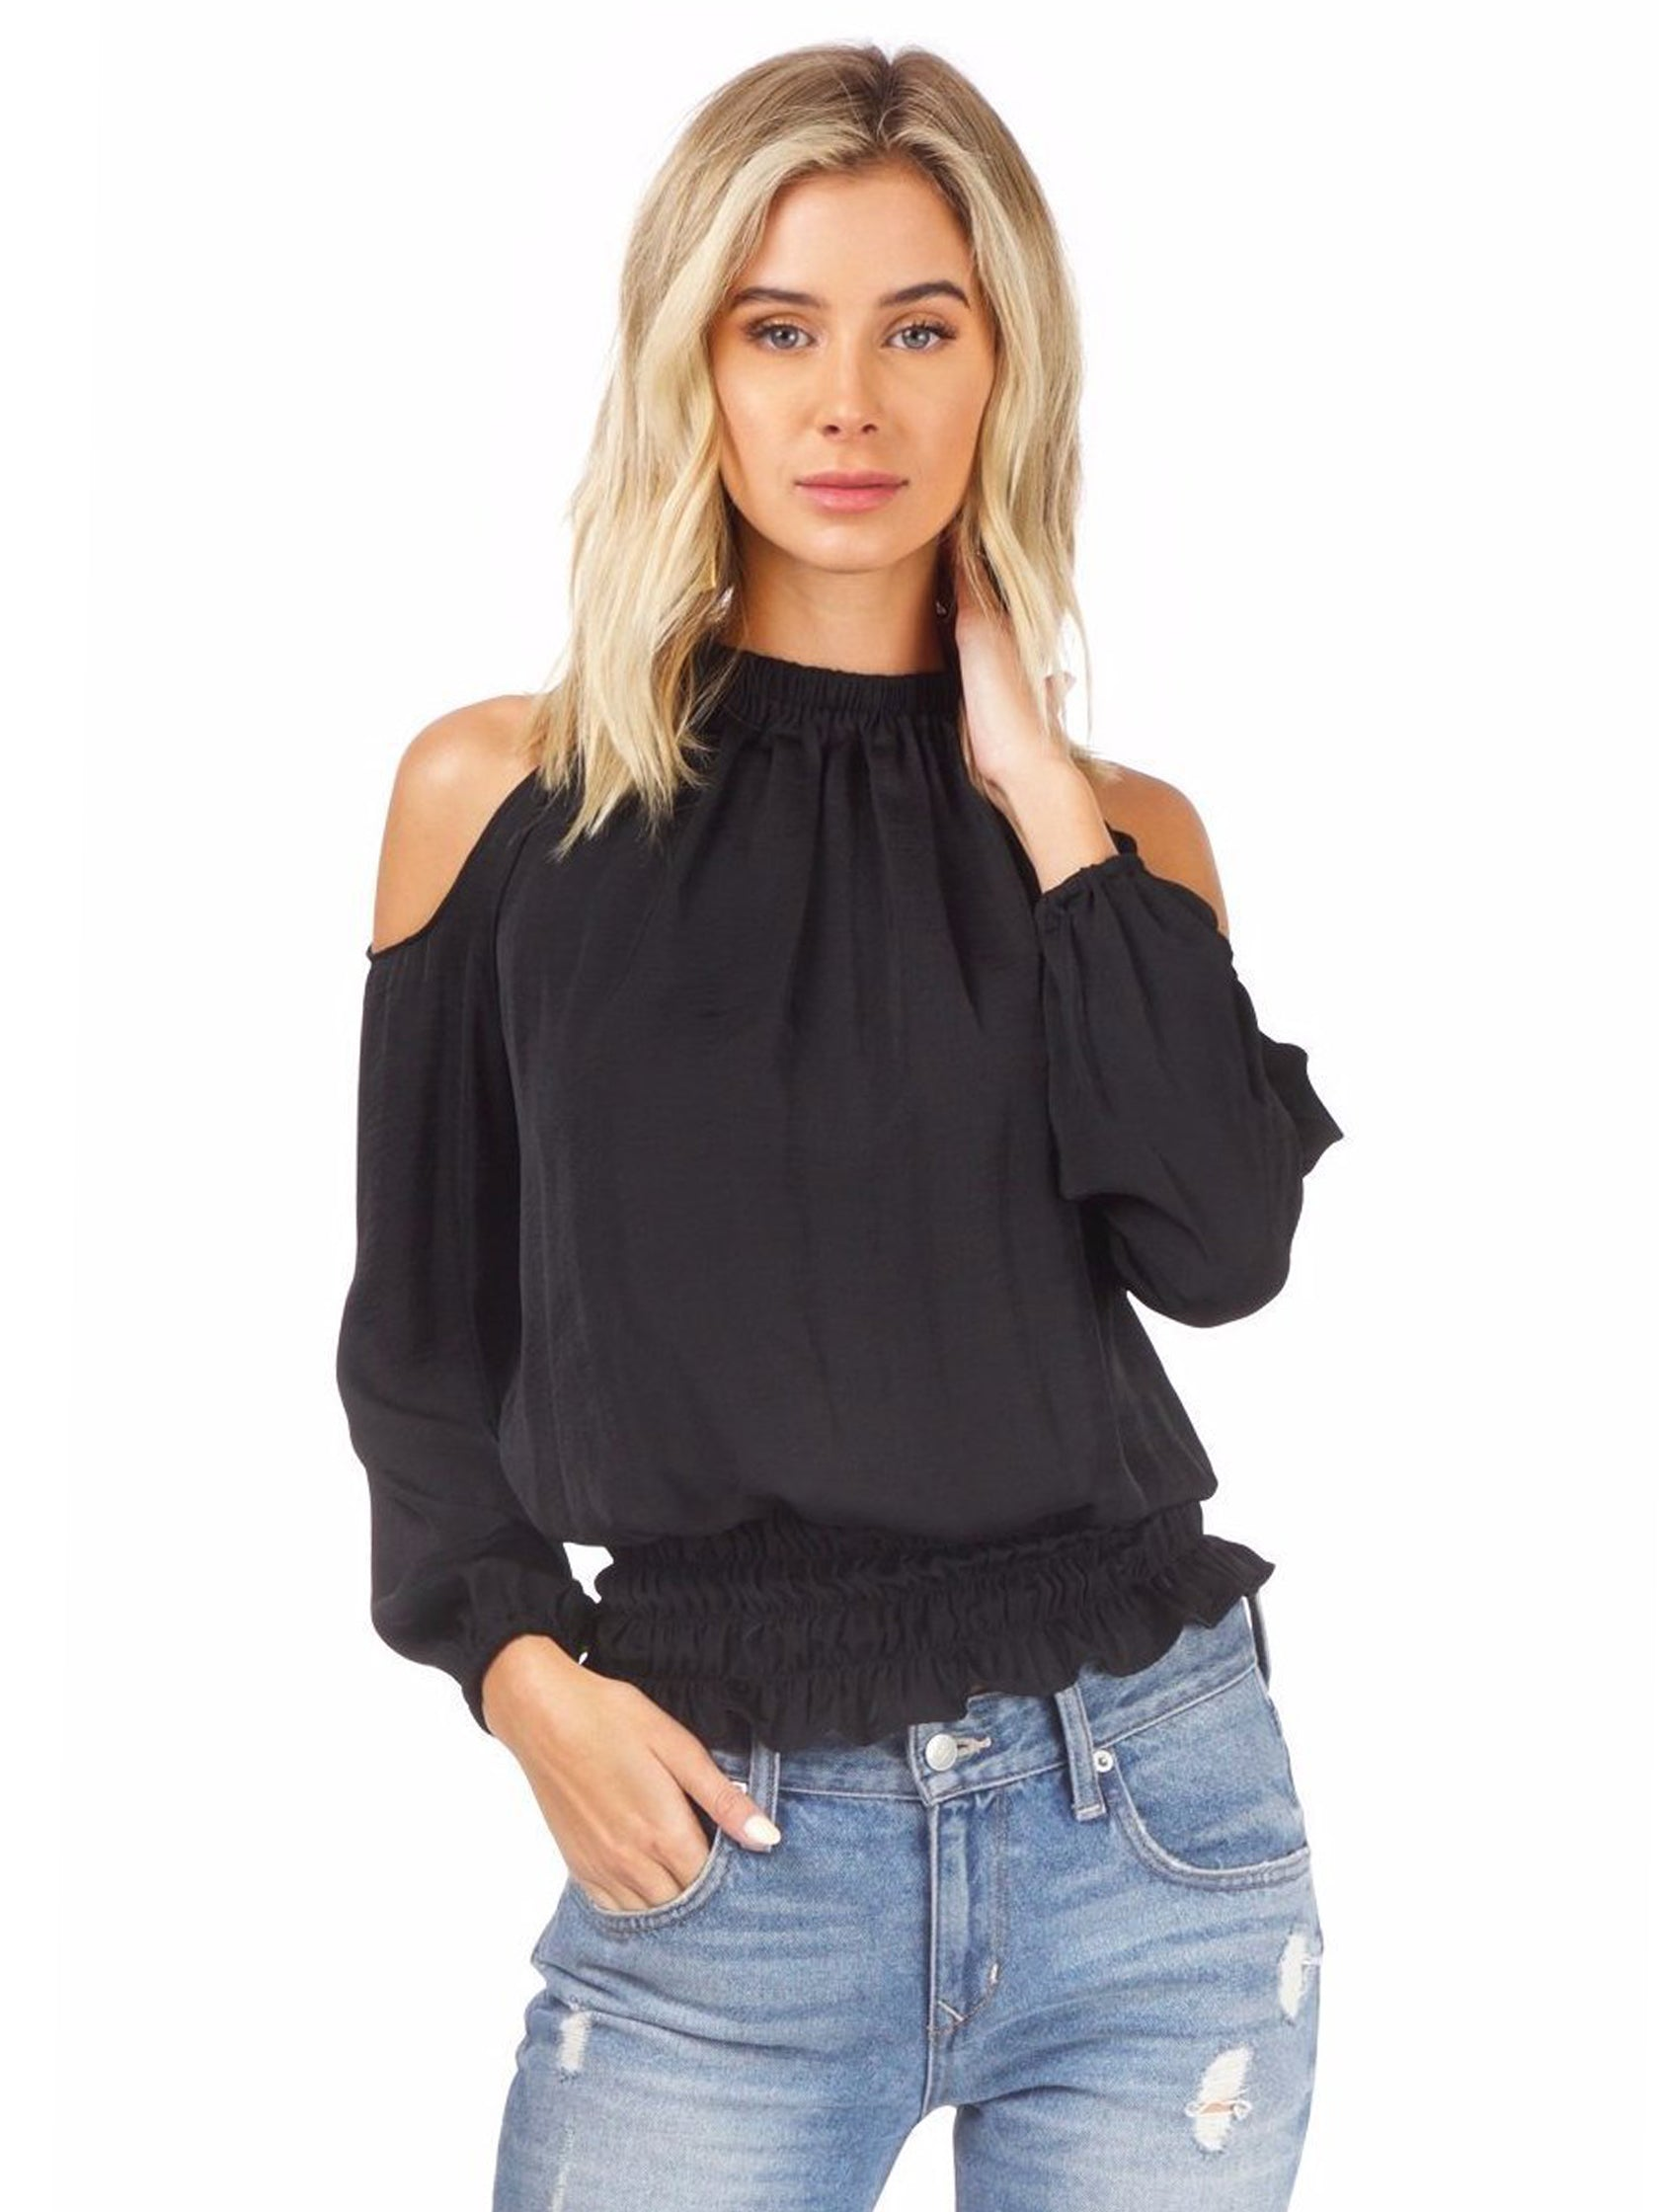 Girl outfit in a top rental from AQUA called Cold Shoulder Top